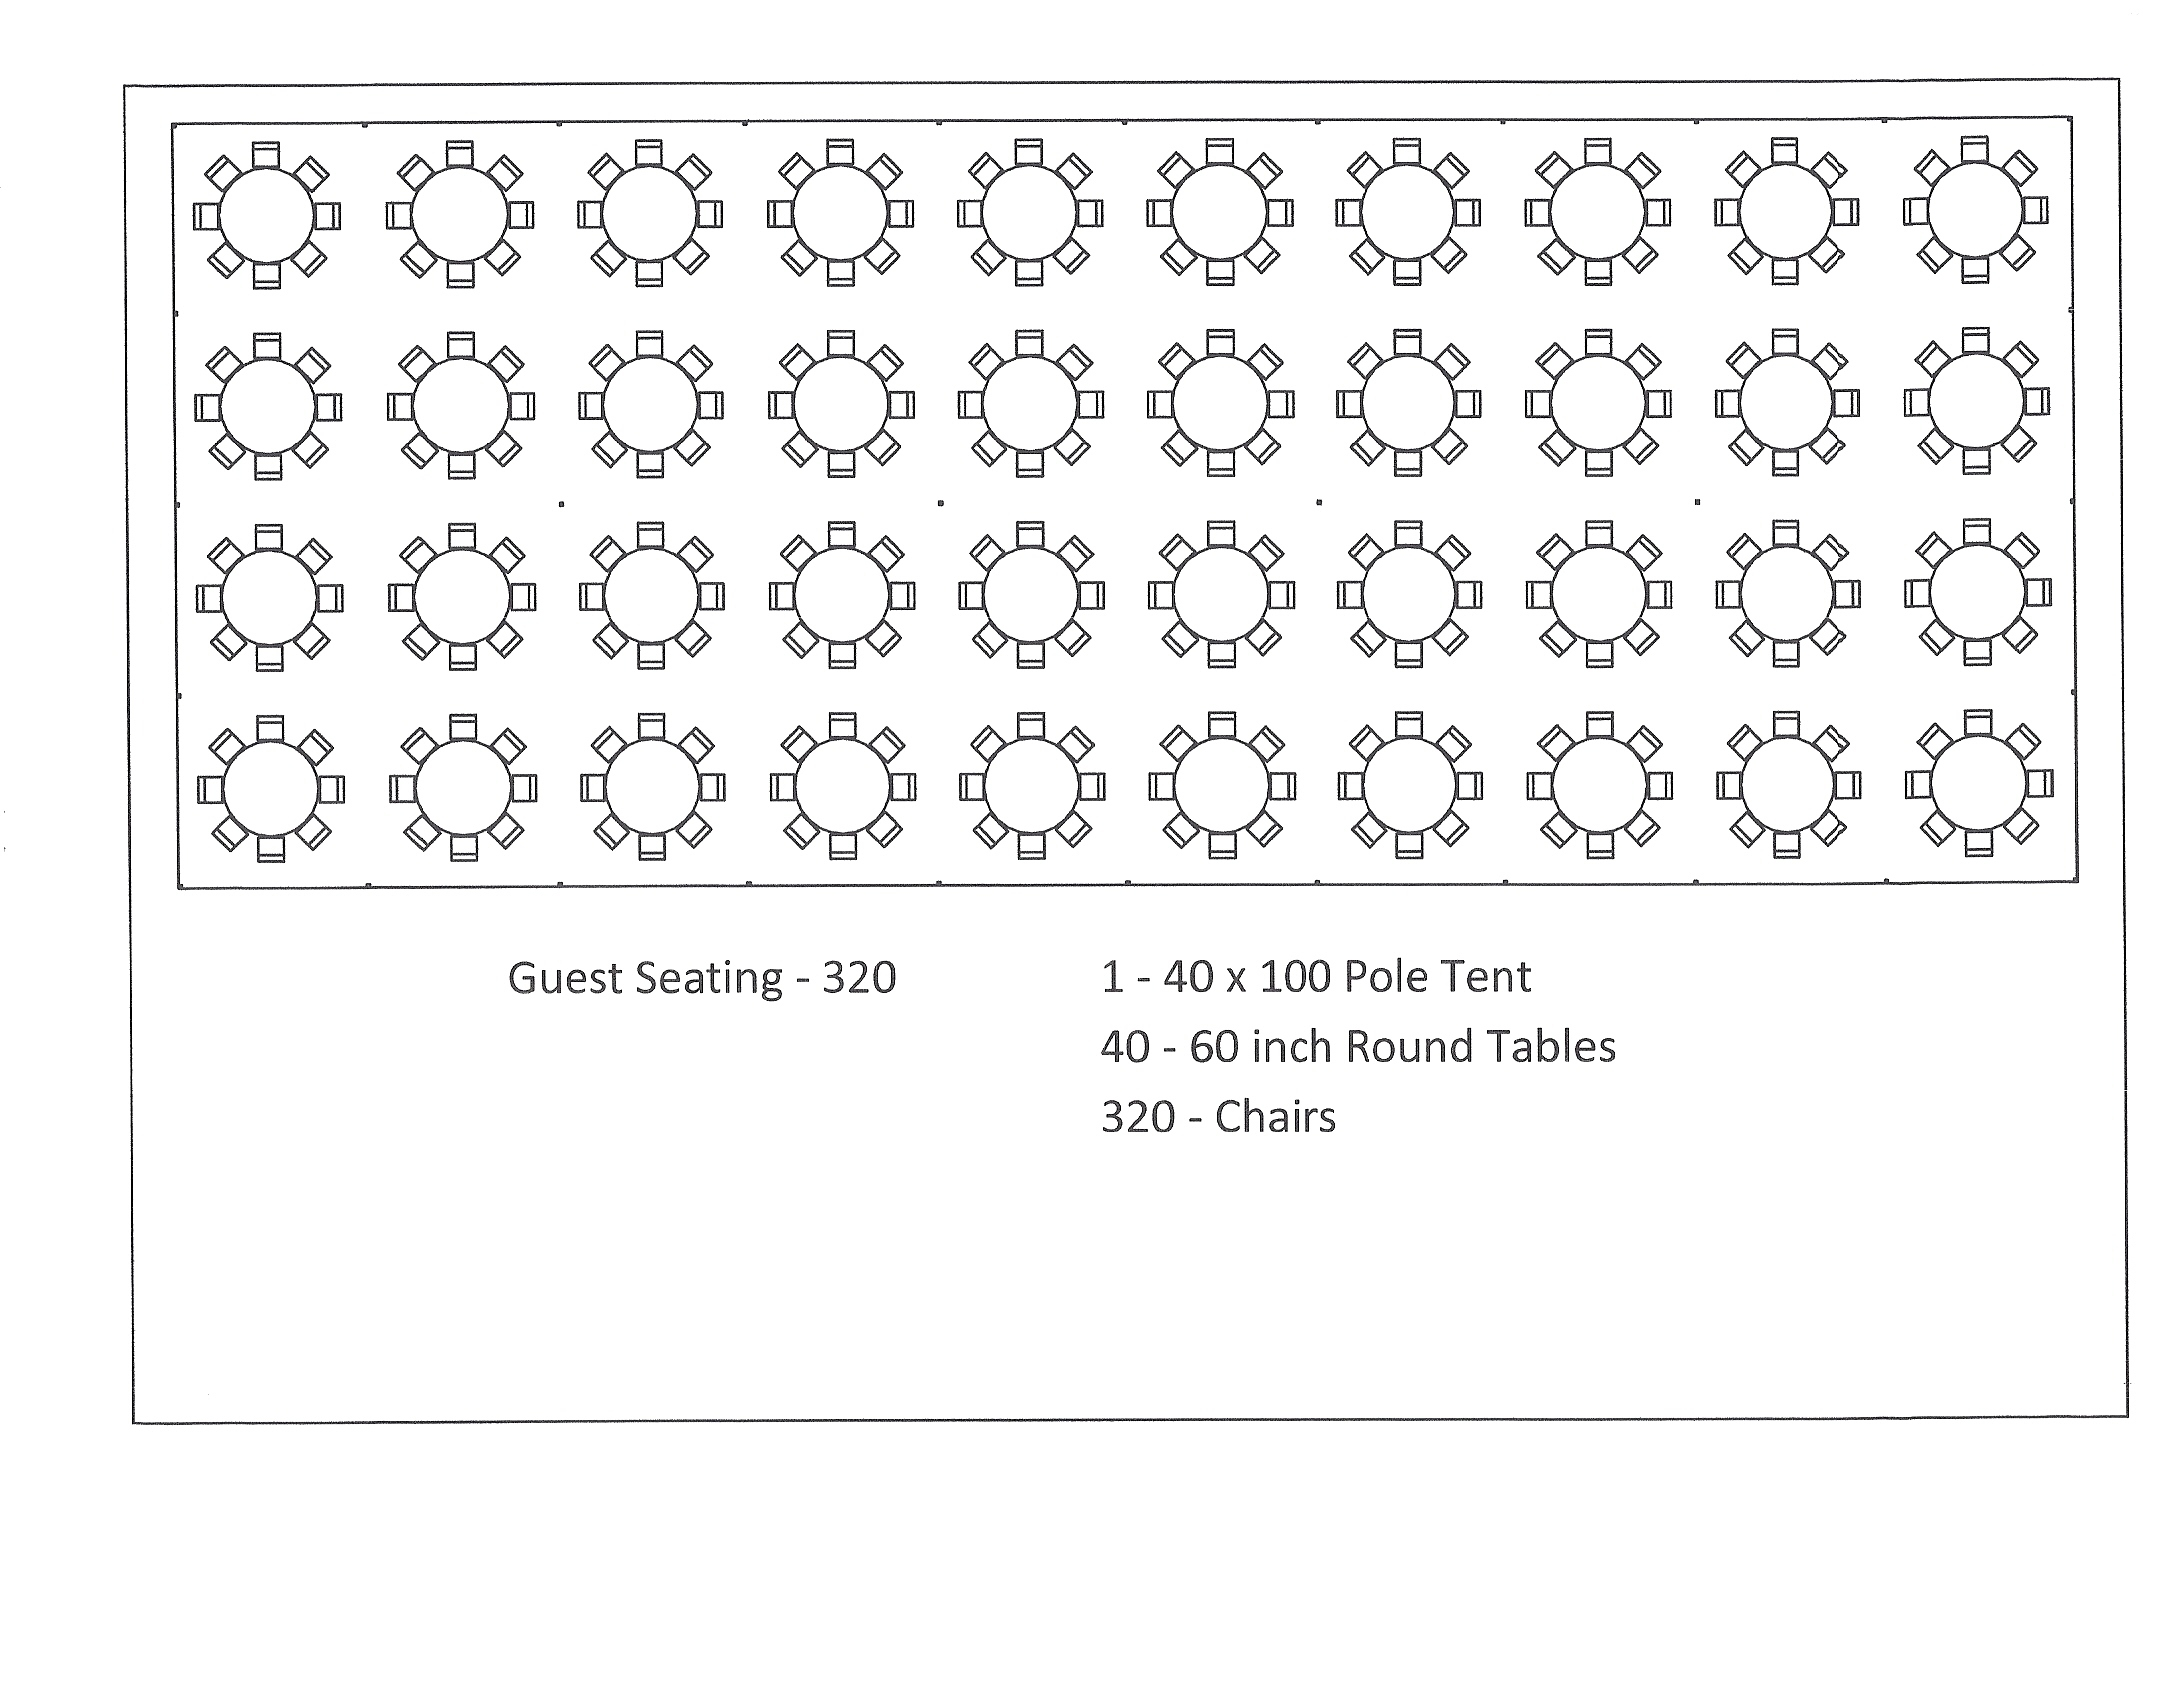 Outdoor Wedding Reception Tables Layout